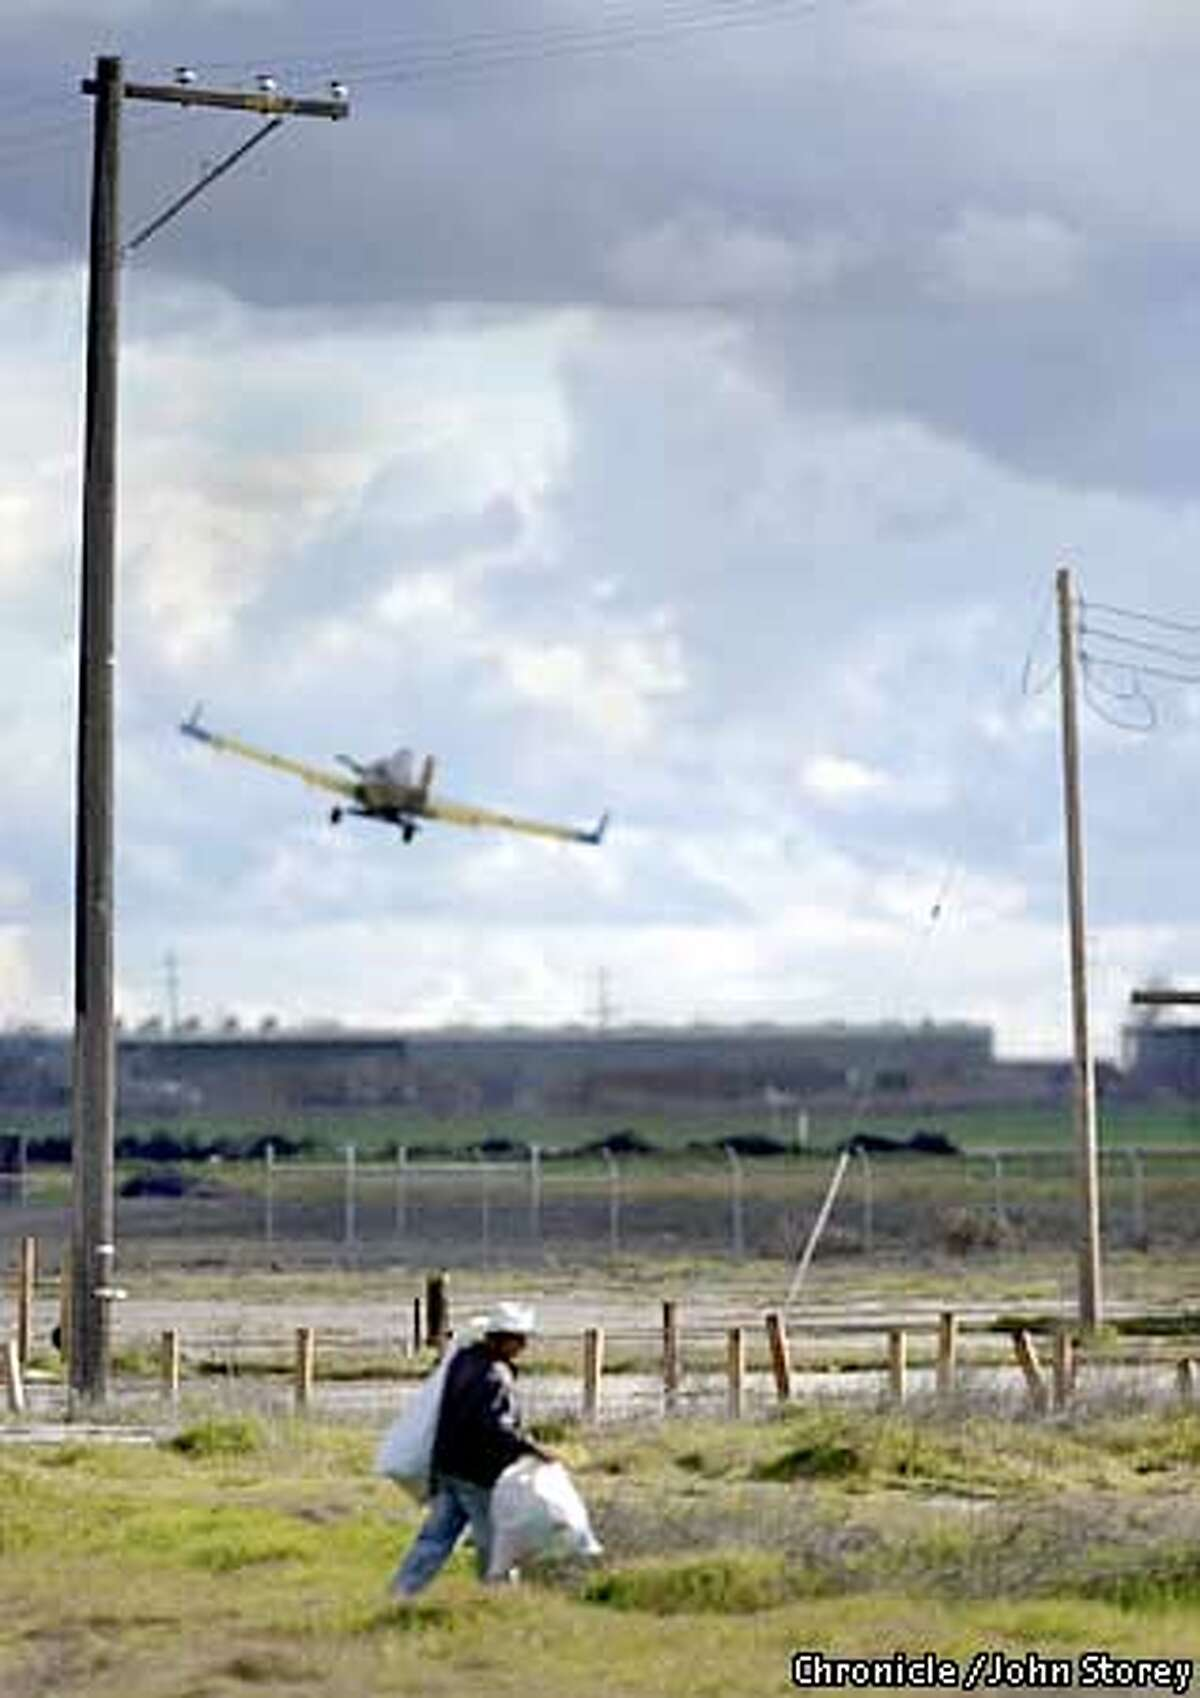 FIREBAUGH-C-13FEB03-MN-JRS-Story about the town of Firebaugh in the Central Valley for the Rural Poverty Series. A man walks with bags as a crop duster takes off in the background in Firebaugh. Chronicle photo by John Storey.